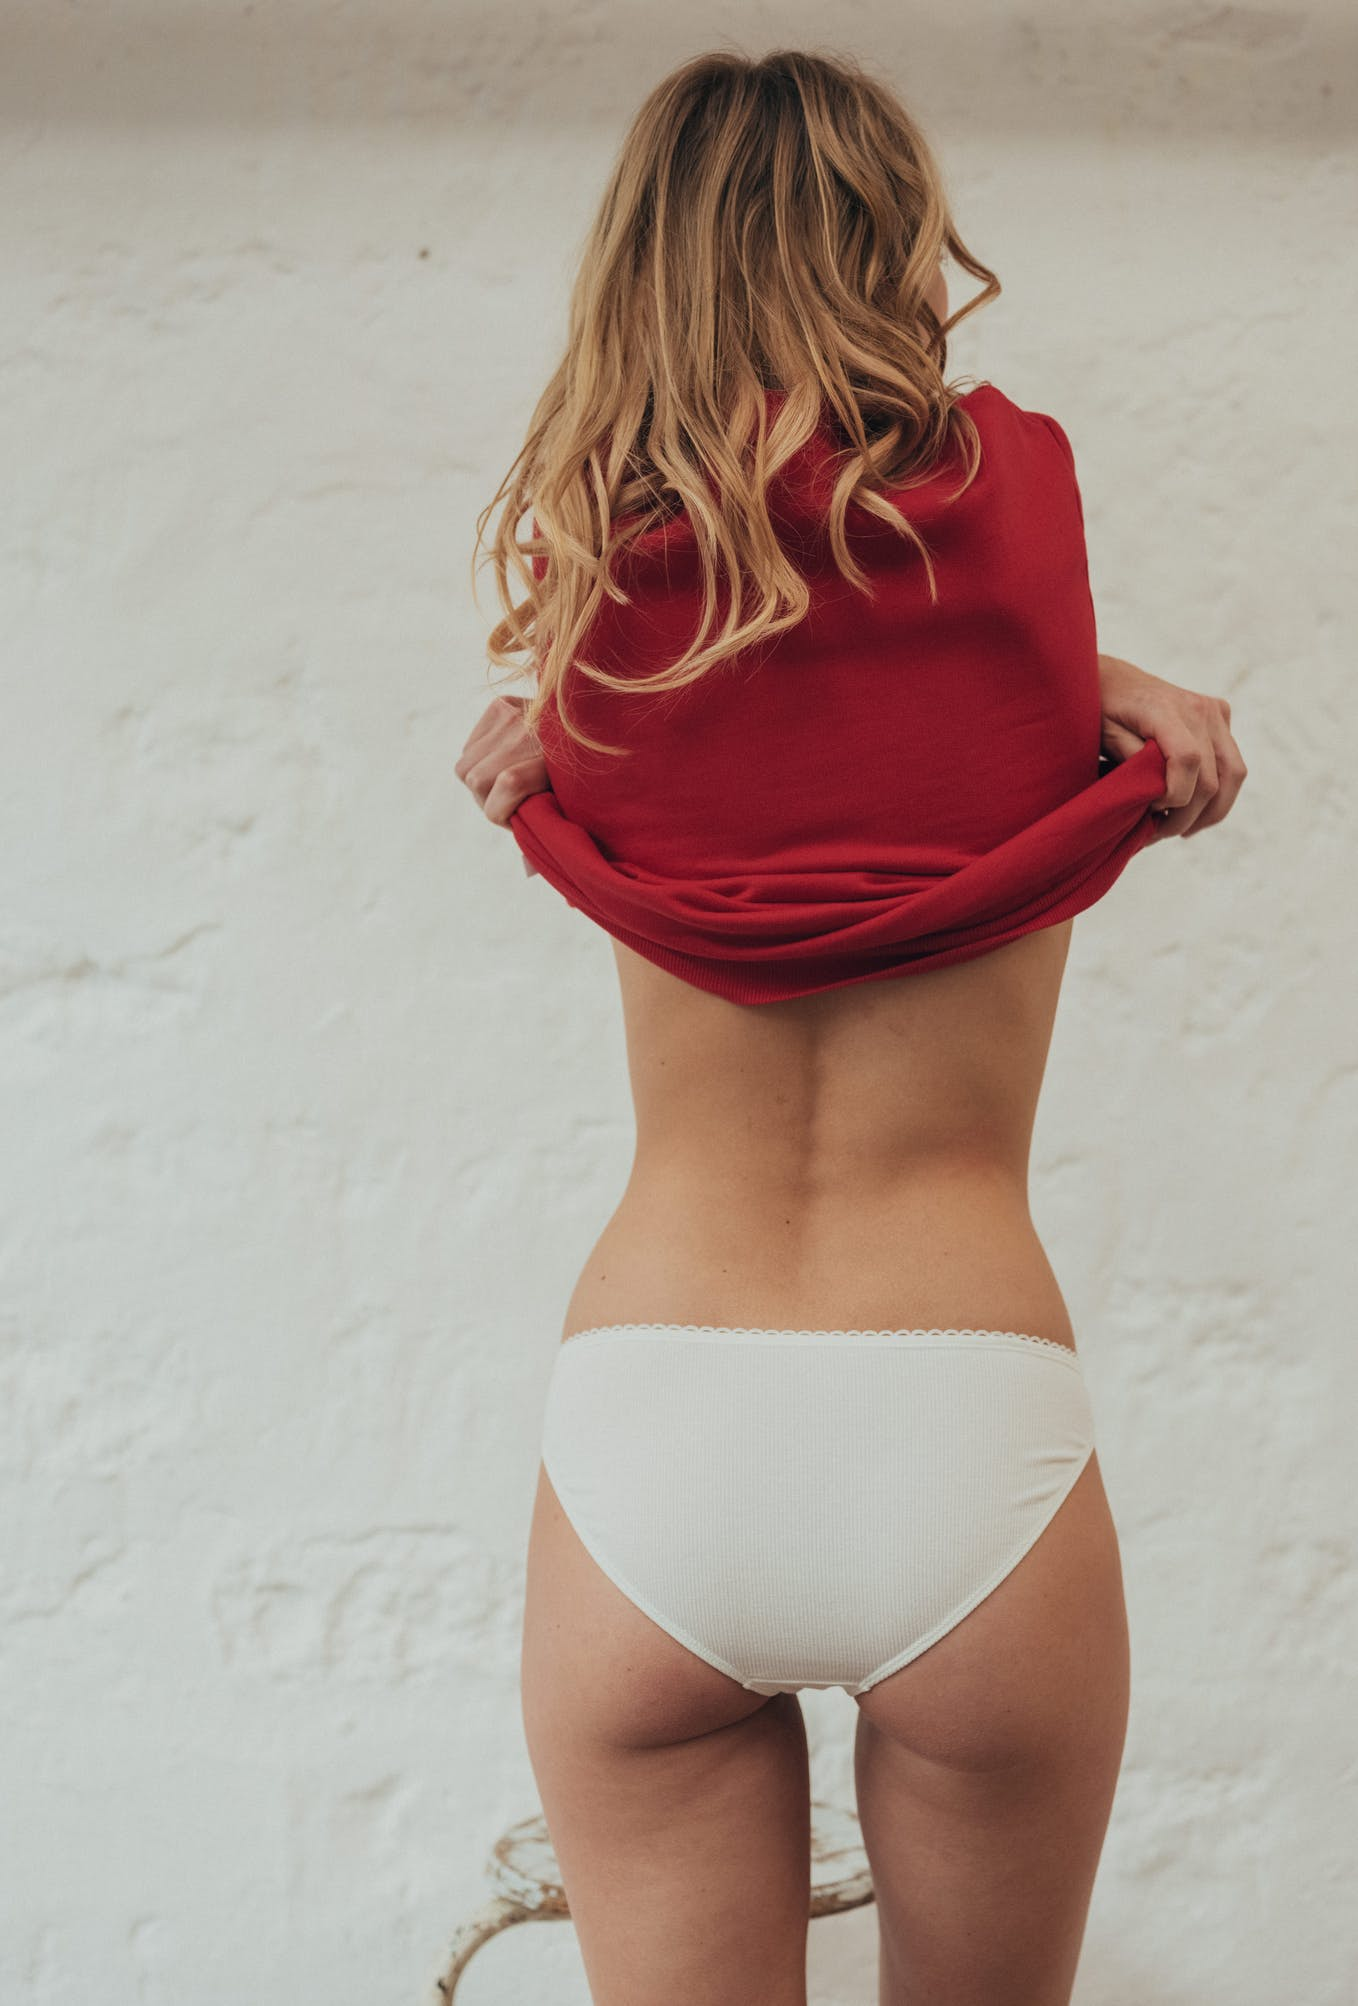 Embroidered briefs Histoire de corps Amour